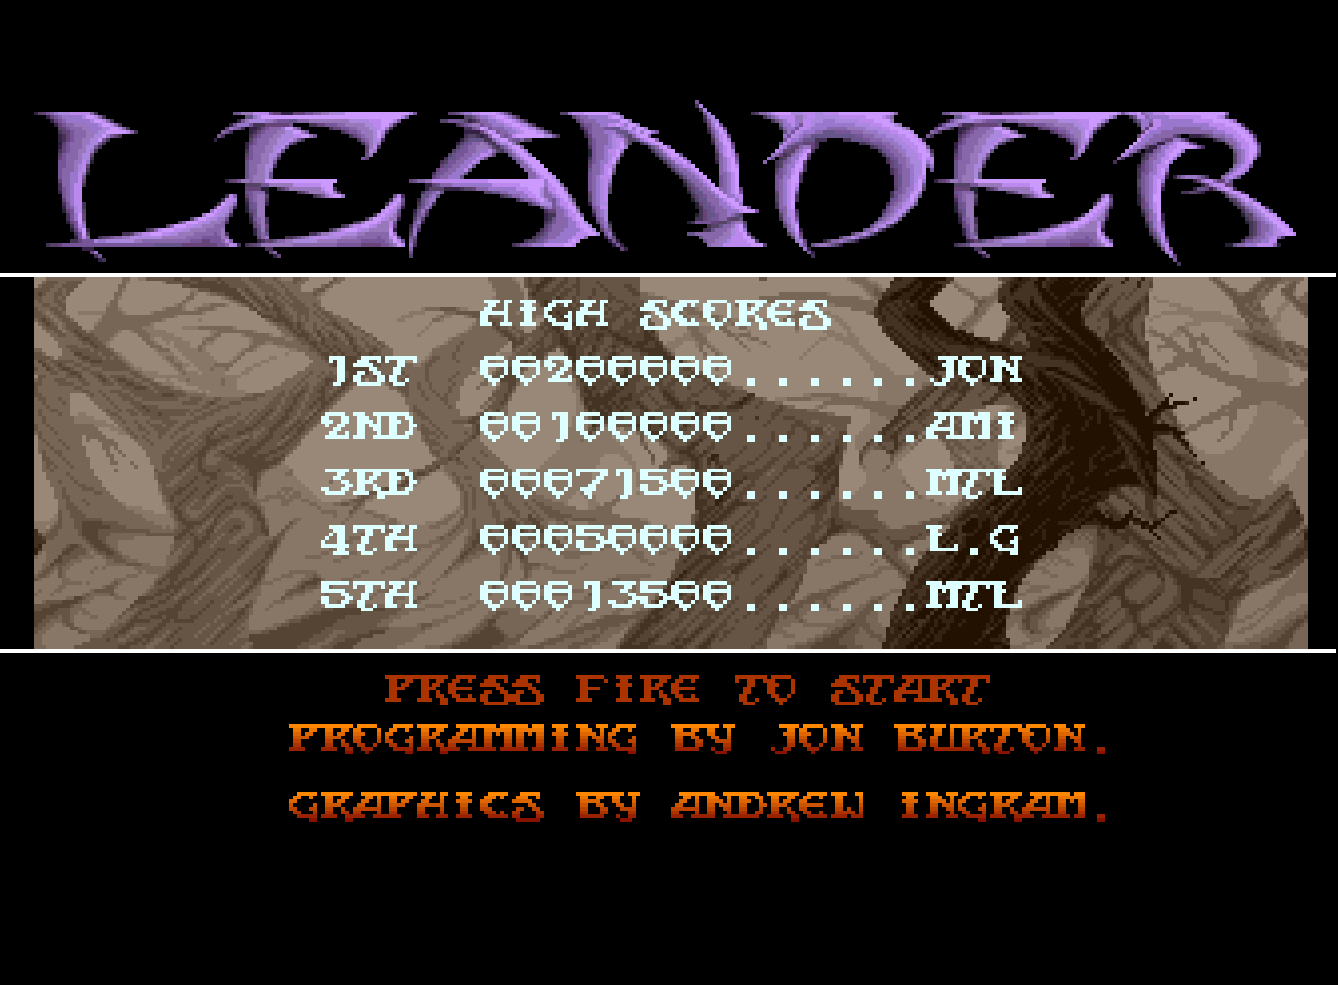 Mantalow: Leander [Normal: 5 Lives] (Amiga Emulated) 71,500 points on 2016-09-10 16:51:43